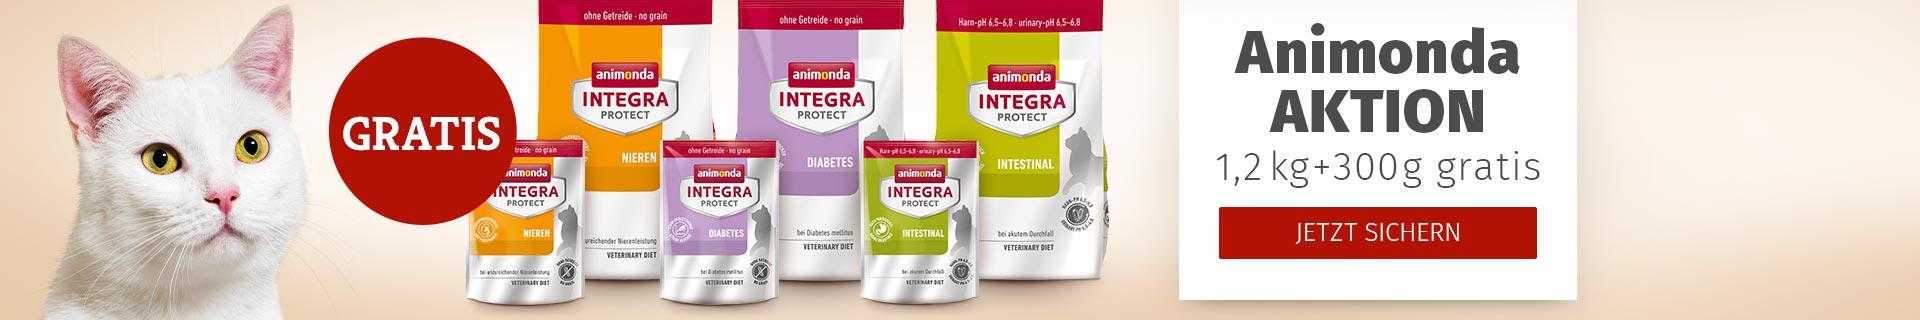 Animonda Aktion 1,2kg kaufen + 300g gratis